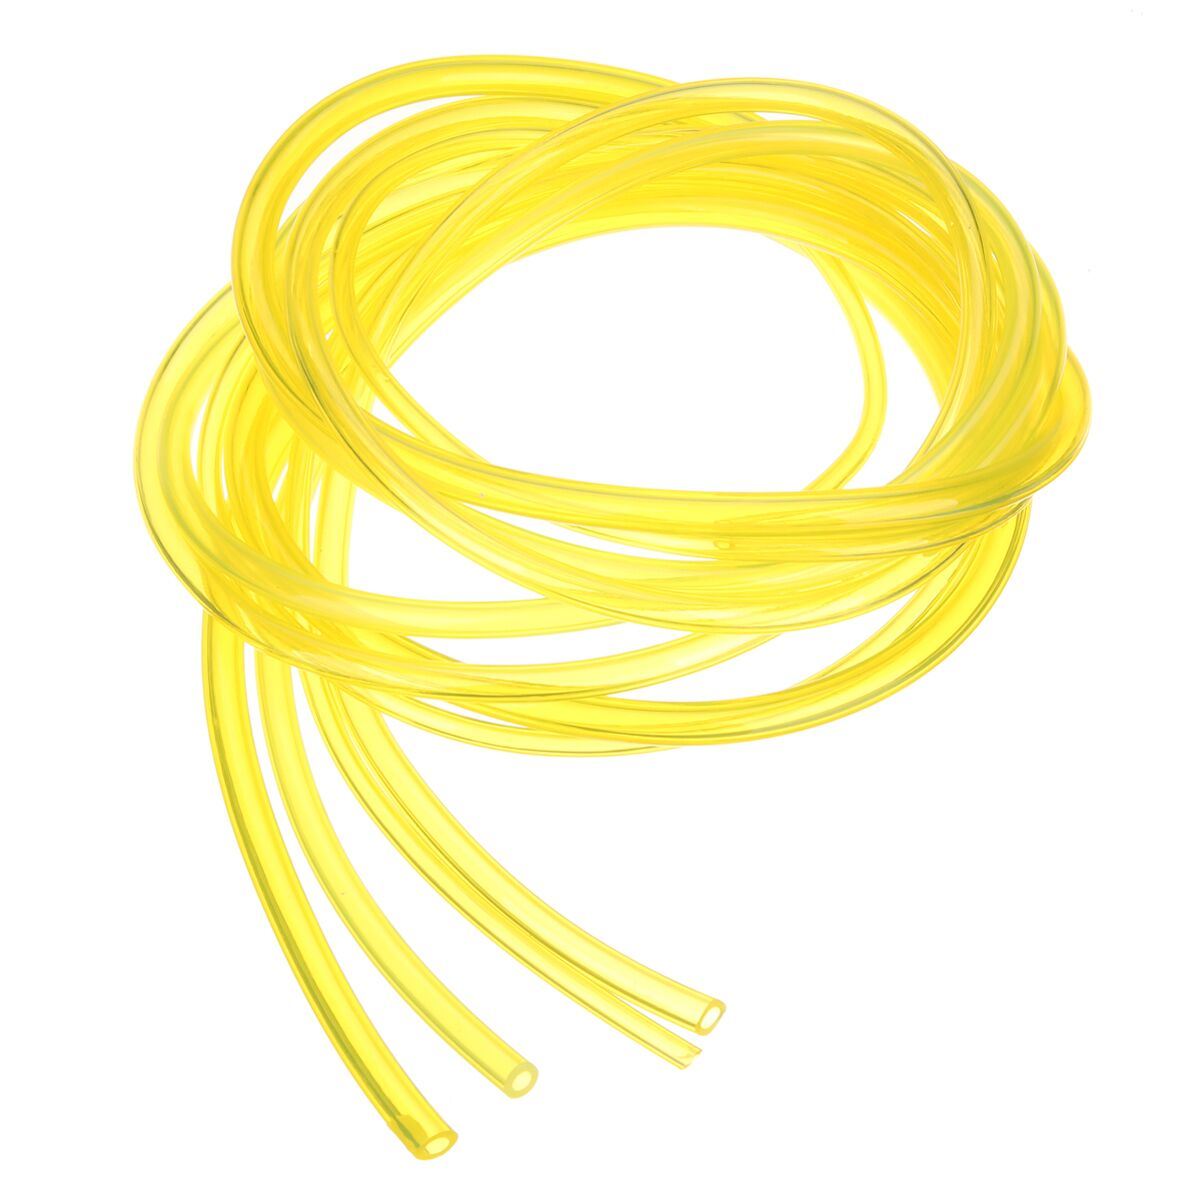 New 100CM Fuel Line Gas Line Pipe Hose For Chainsaw Blower Trimmer Weeder Cropper 2/2.5/3MM